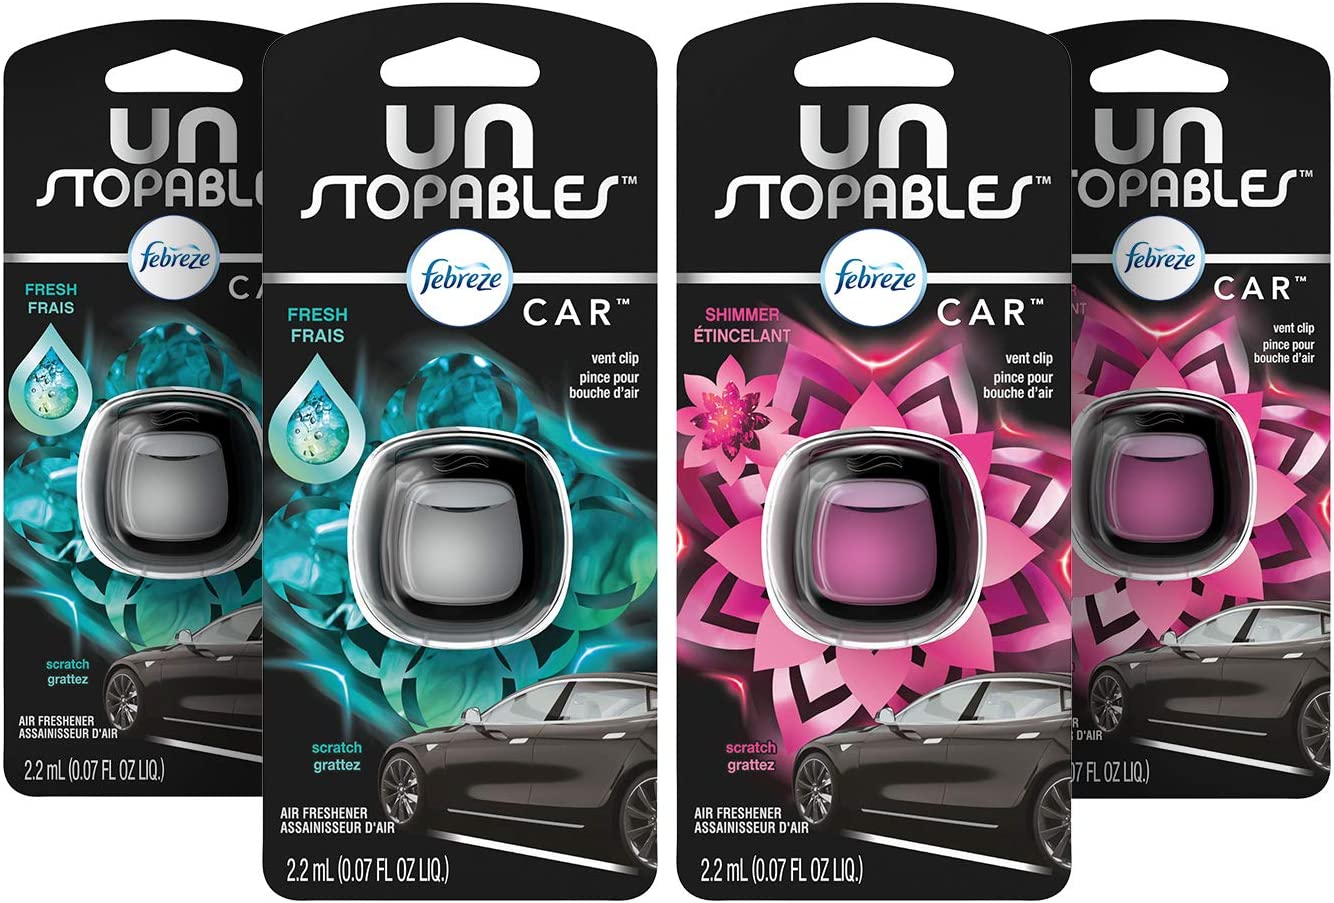 Febreze Car Unstopables Air Freshener Vent Clips, 2 Fresh and Shimmer Scent, 4 Count